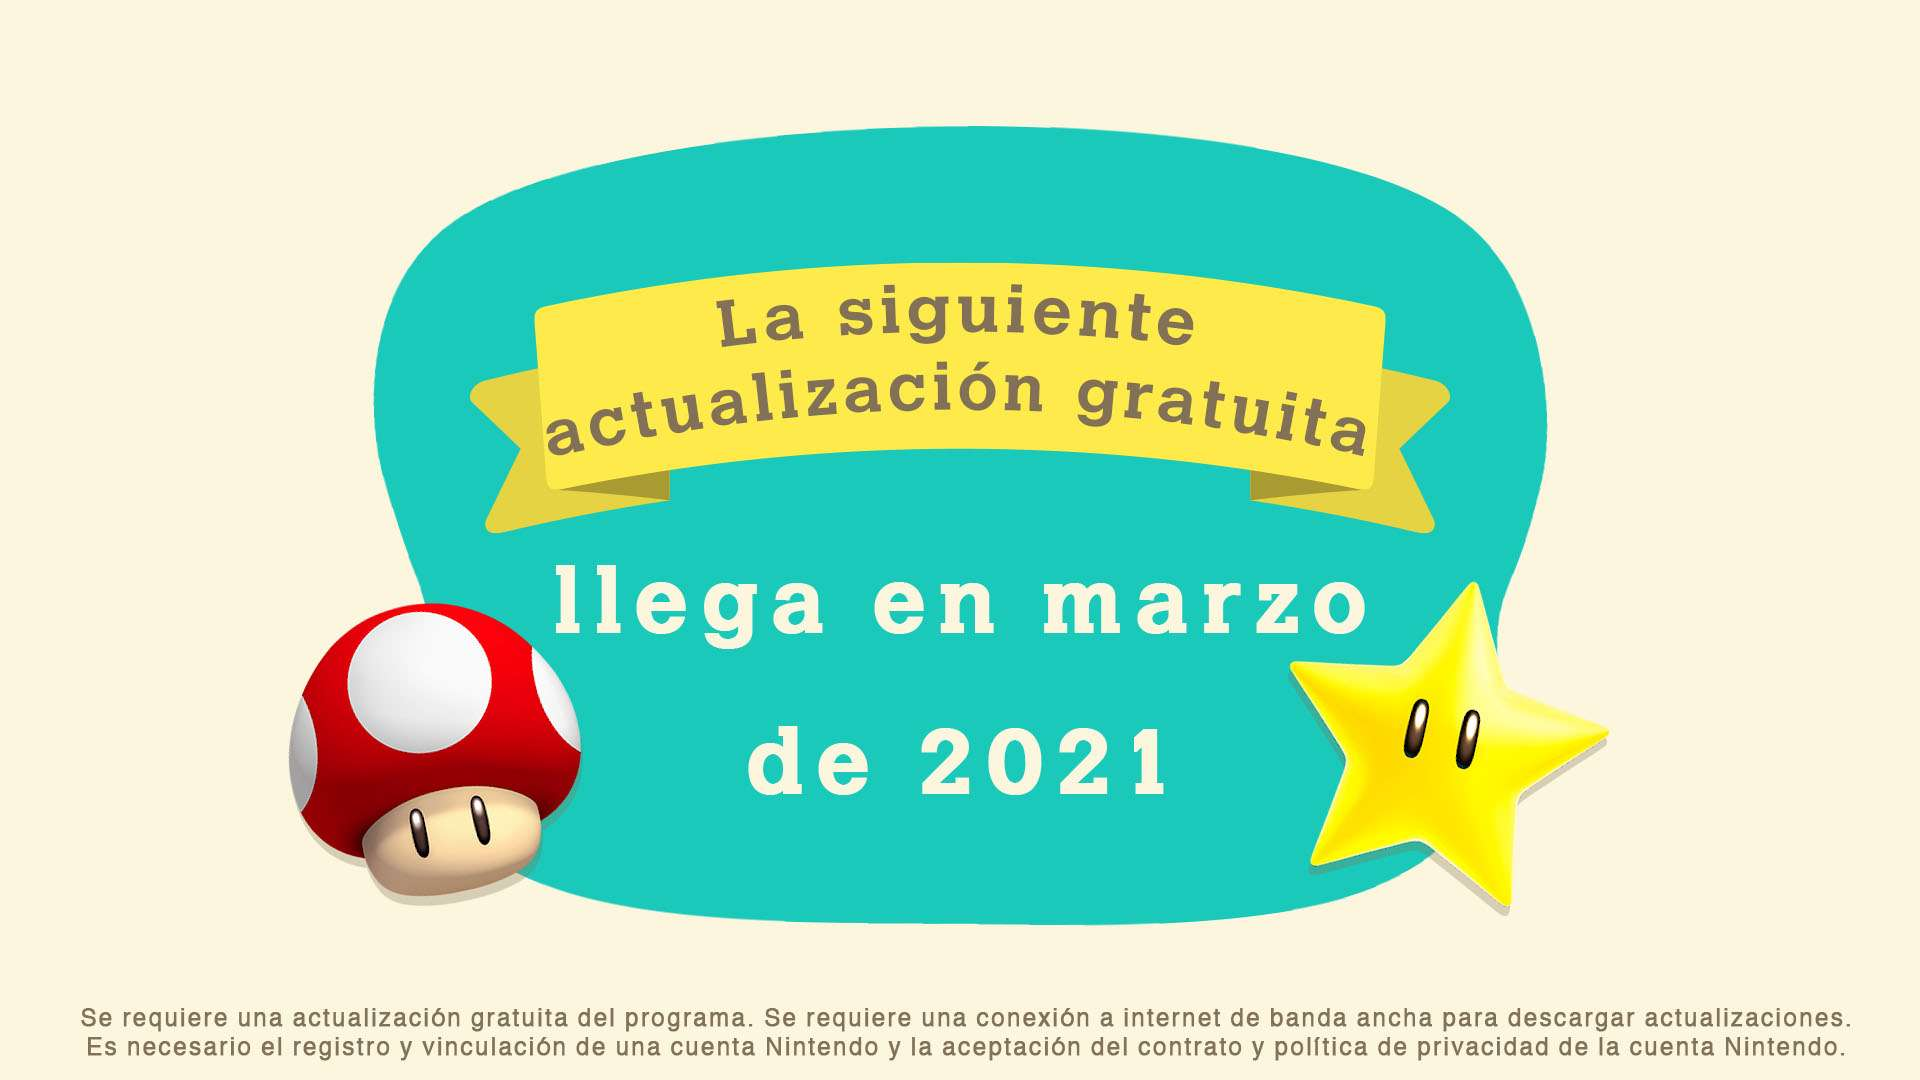 Actualizacion Animal Crossing New Horizons Marzo 2021 - El Carnaval llega a Animal Crossing: New Horizons